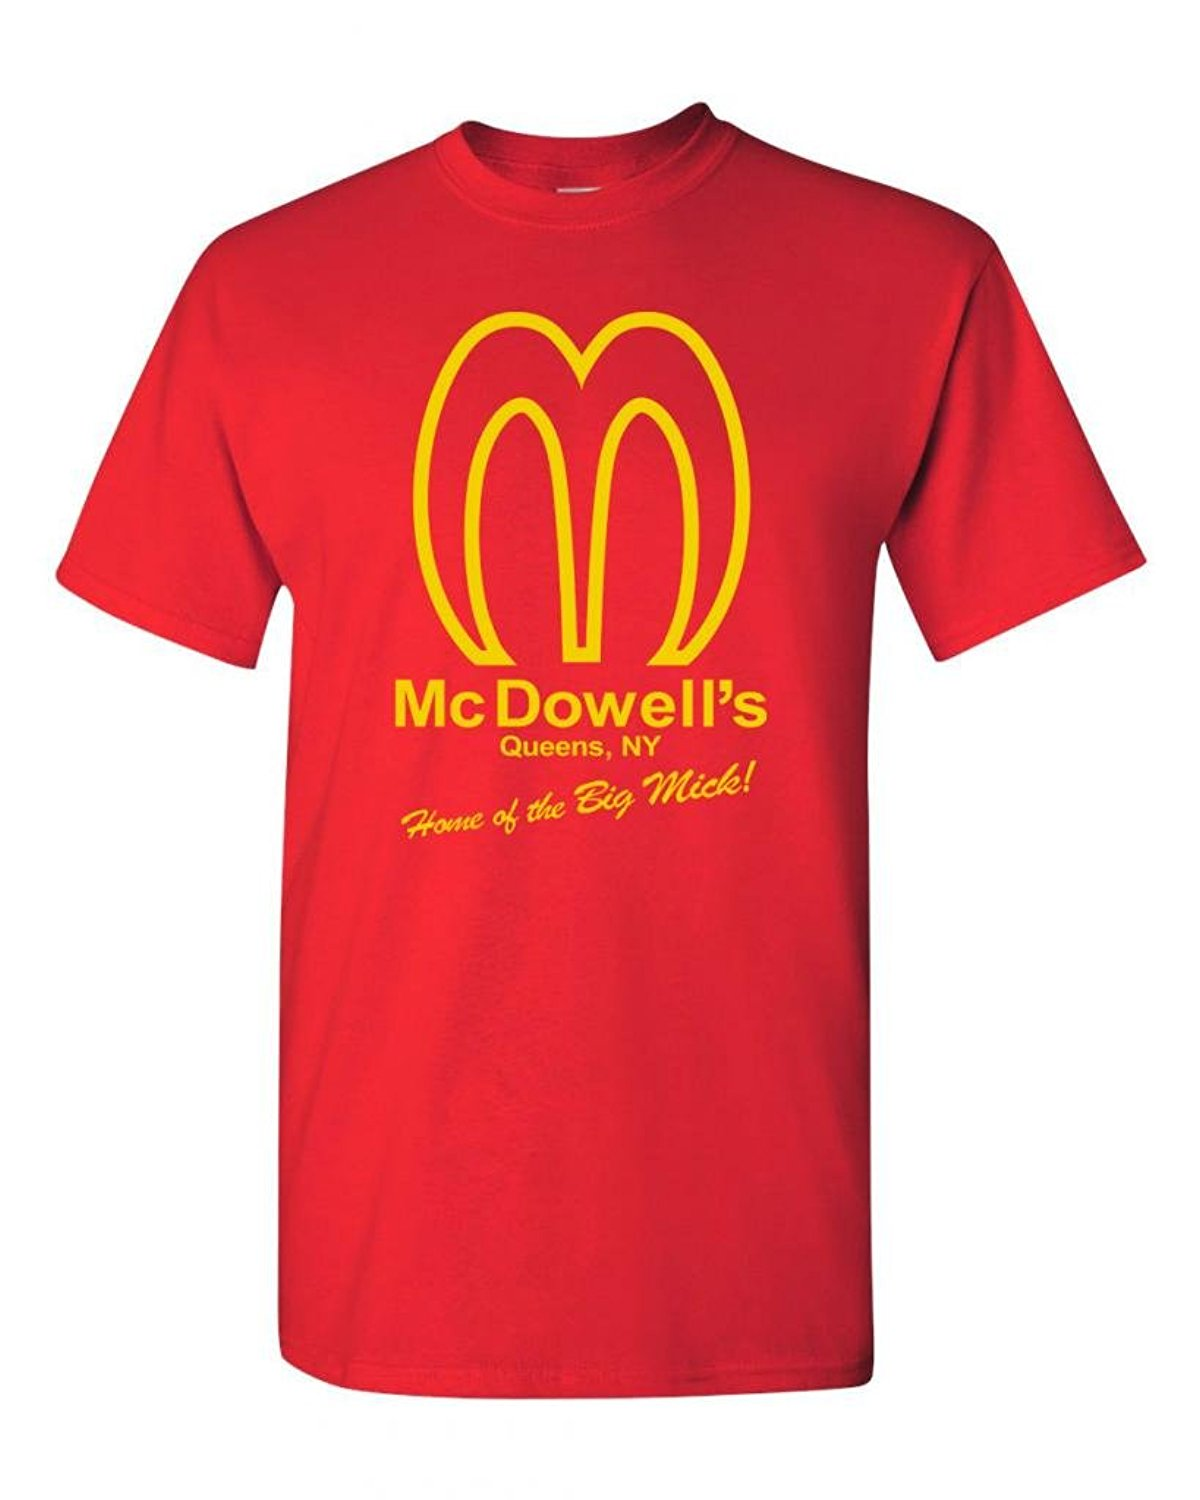 T shirt design queens ny - Mcdowell S Restaurant Queens Ny Funny Parody Adult Dt T Shirt Teefashion T Shirt Men Clothing